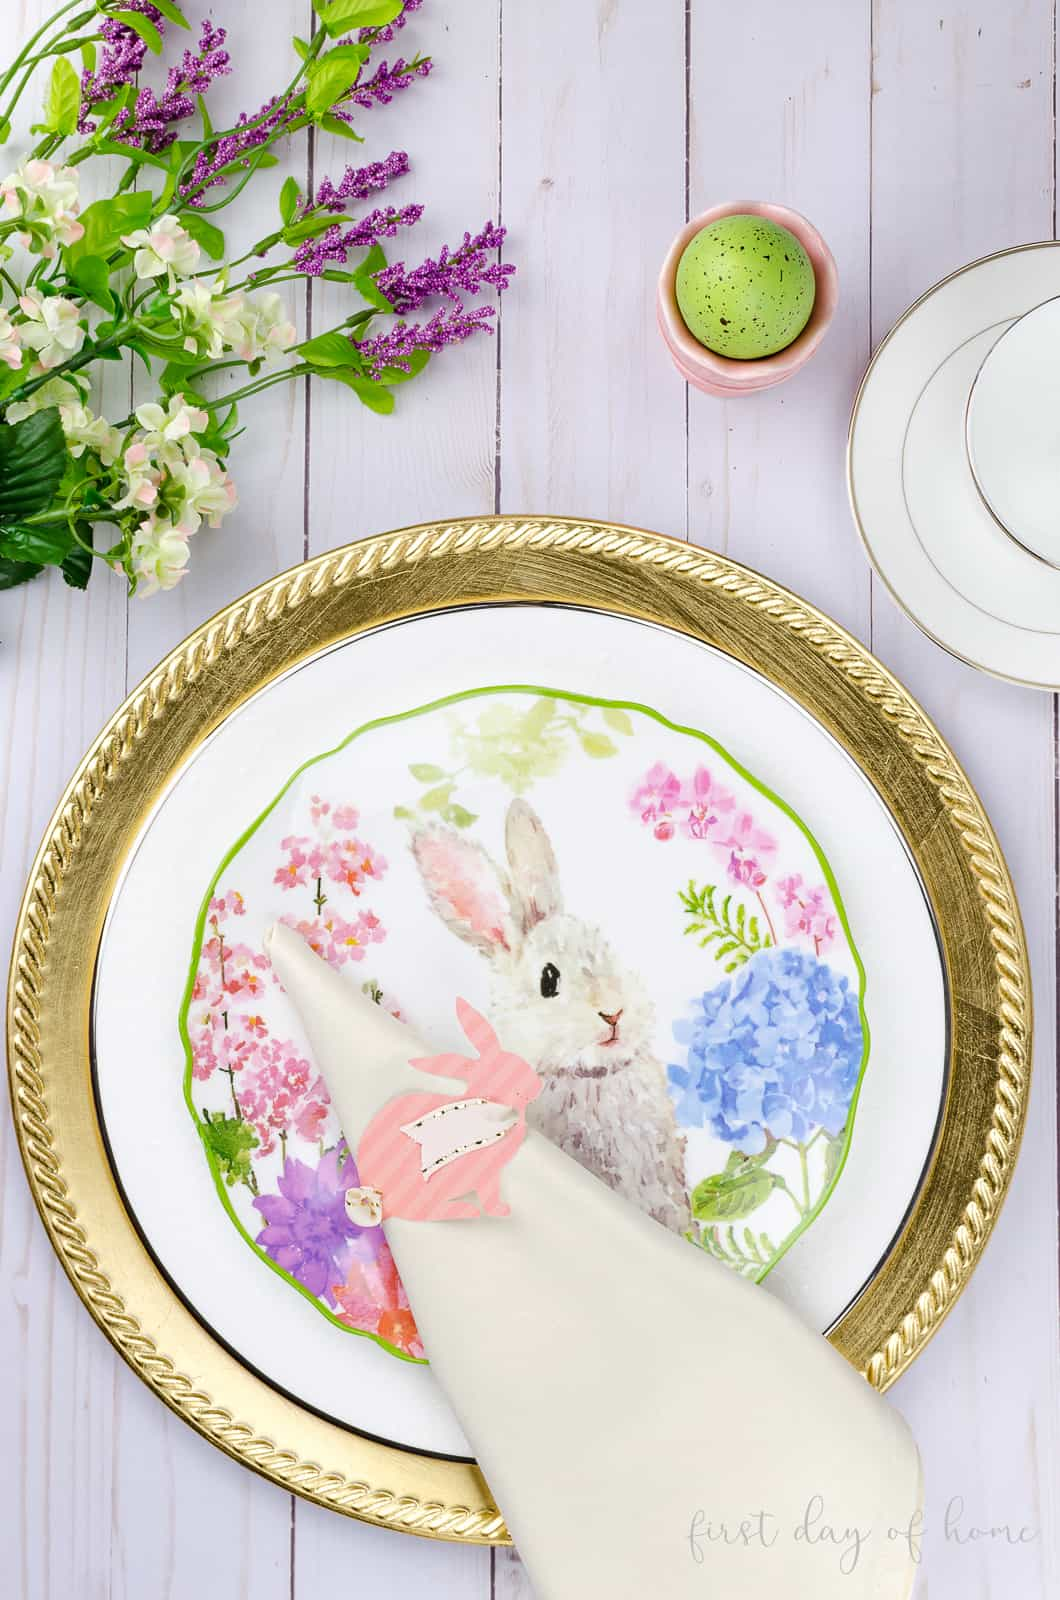 Bunny napkin rings set on Easter bunny plate and gold charger for Easter tablescape decor